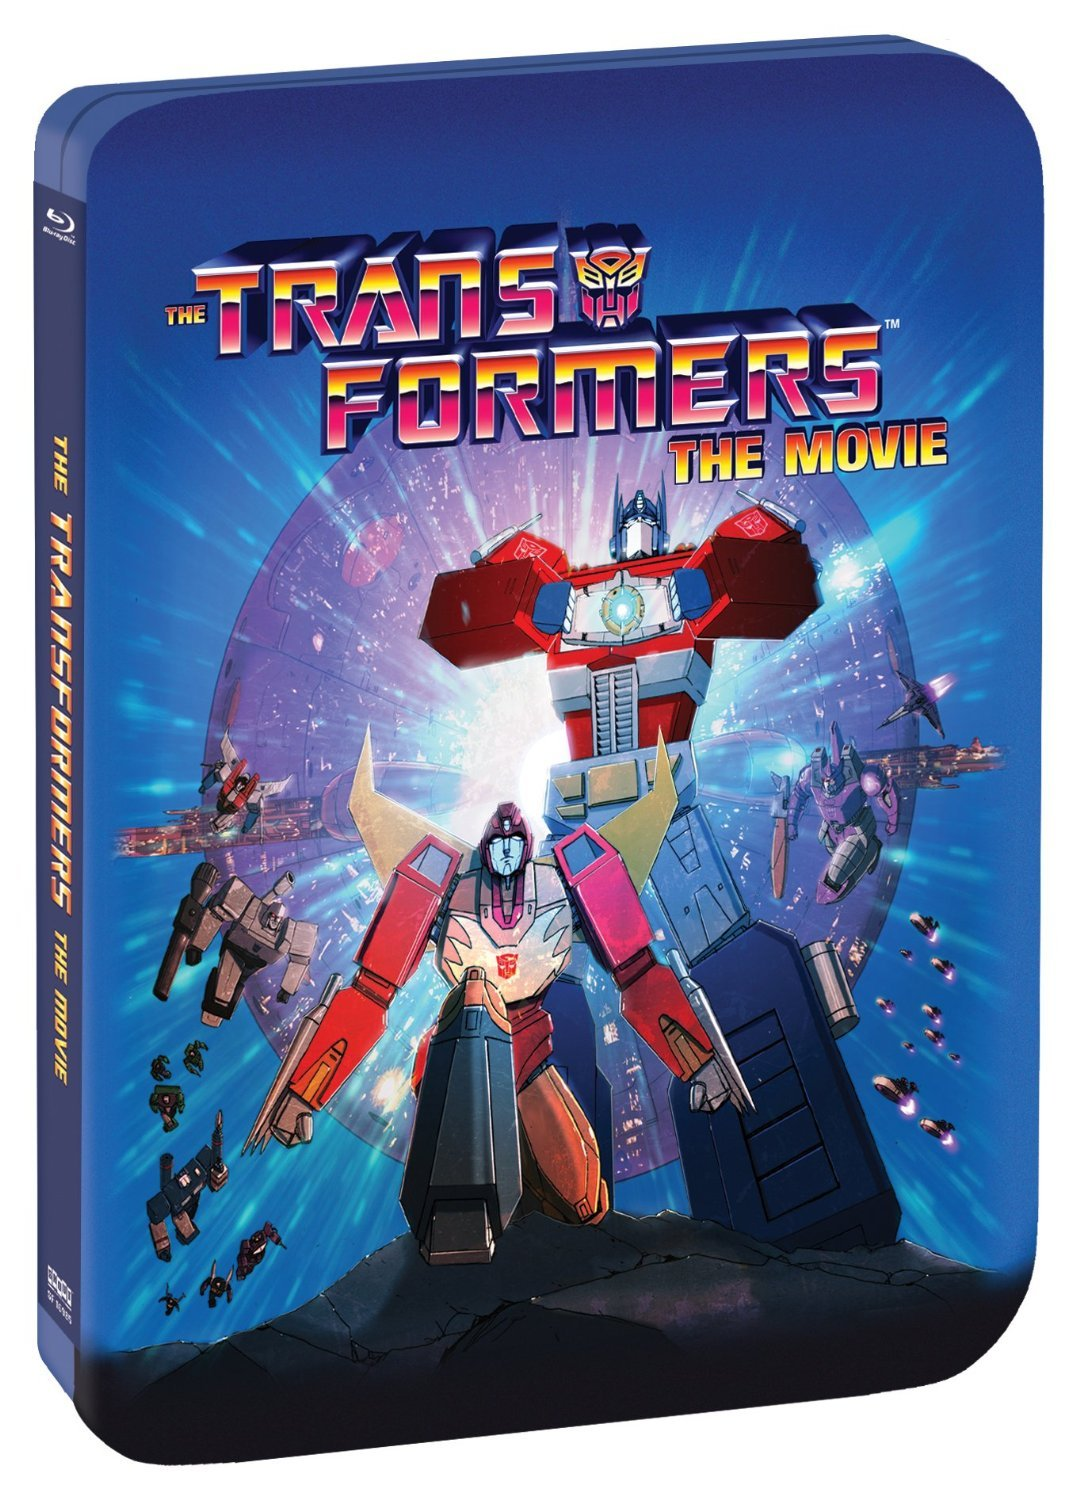 The Transformers The Movie 30th Anniversary Edition Anime Uk News